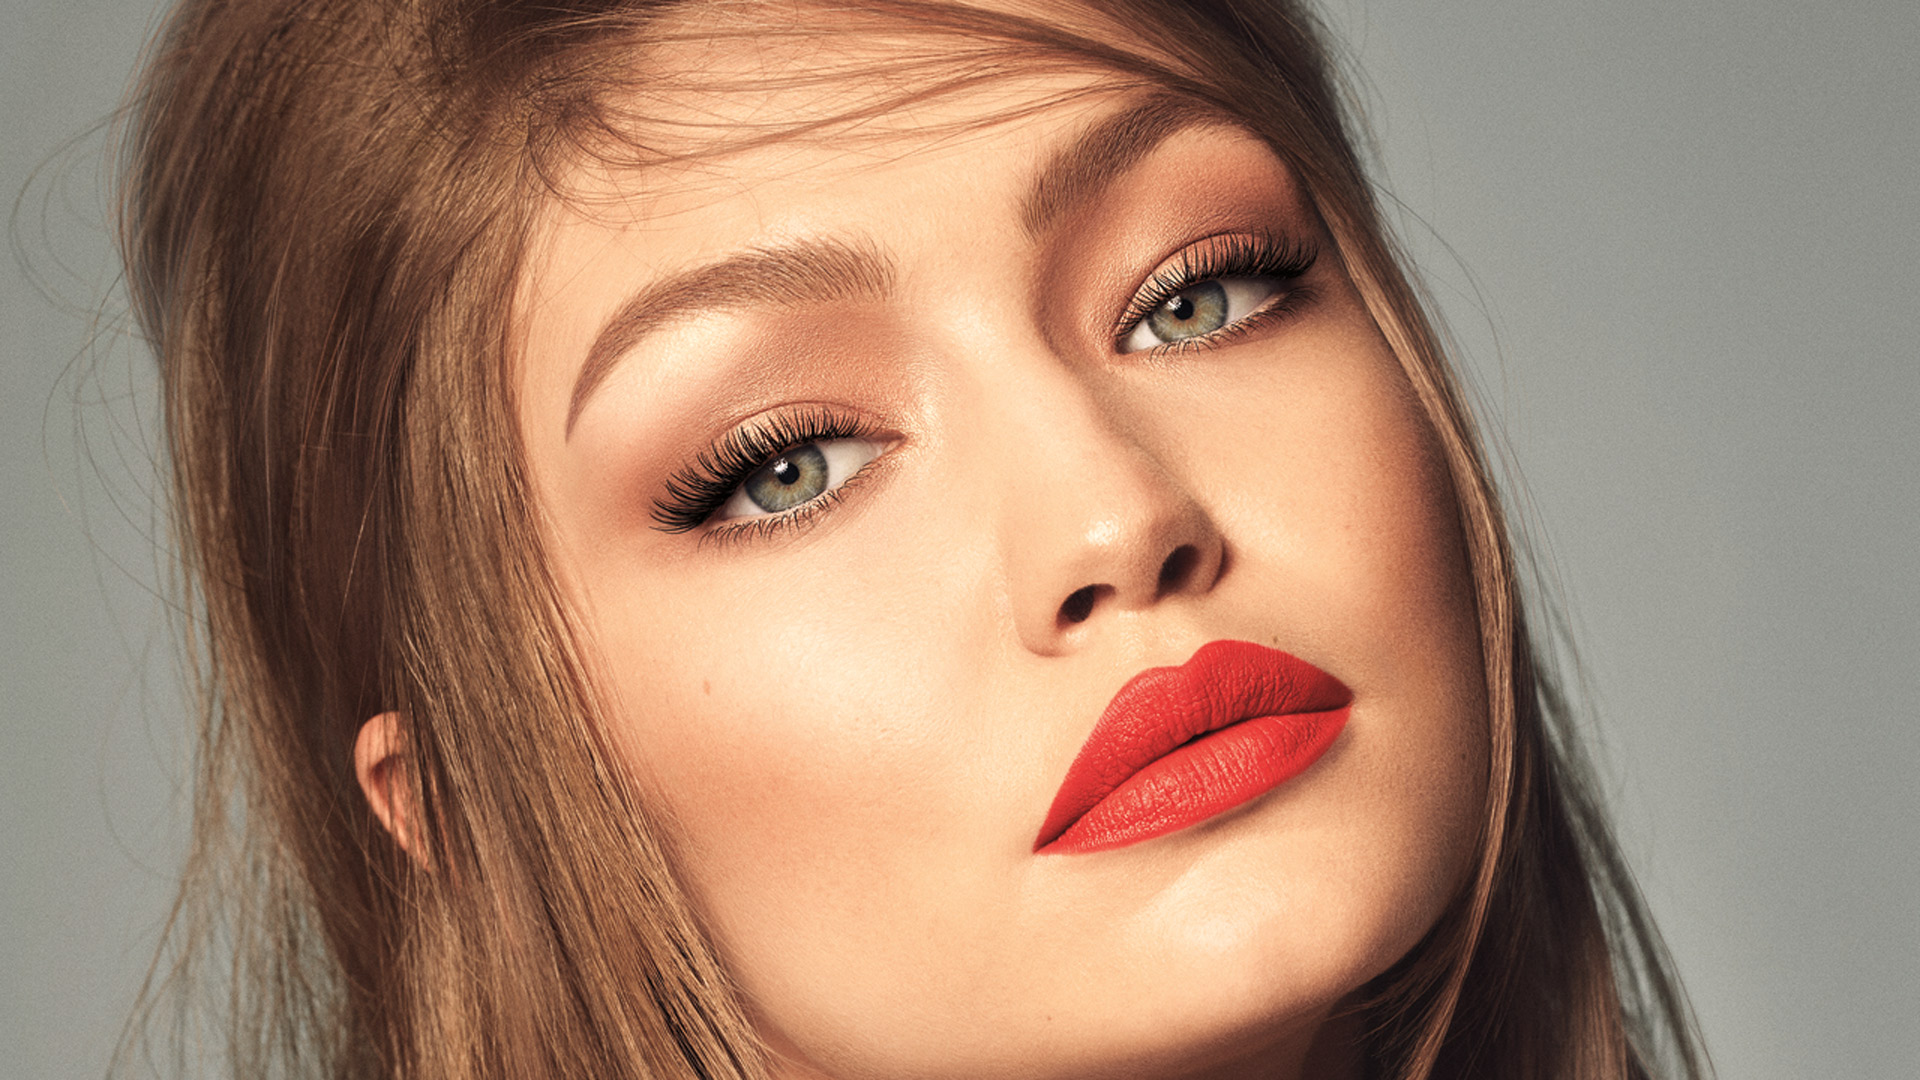 Give a New Boost of Beauty to Your Eyes Through Eyebrow Tattoos